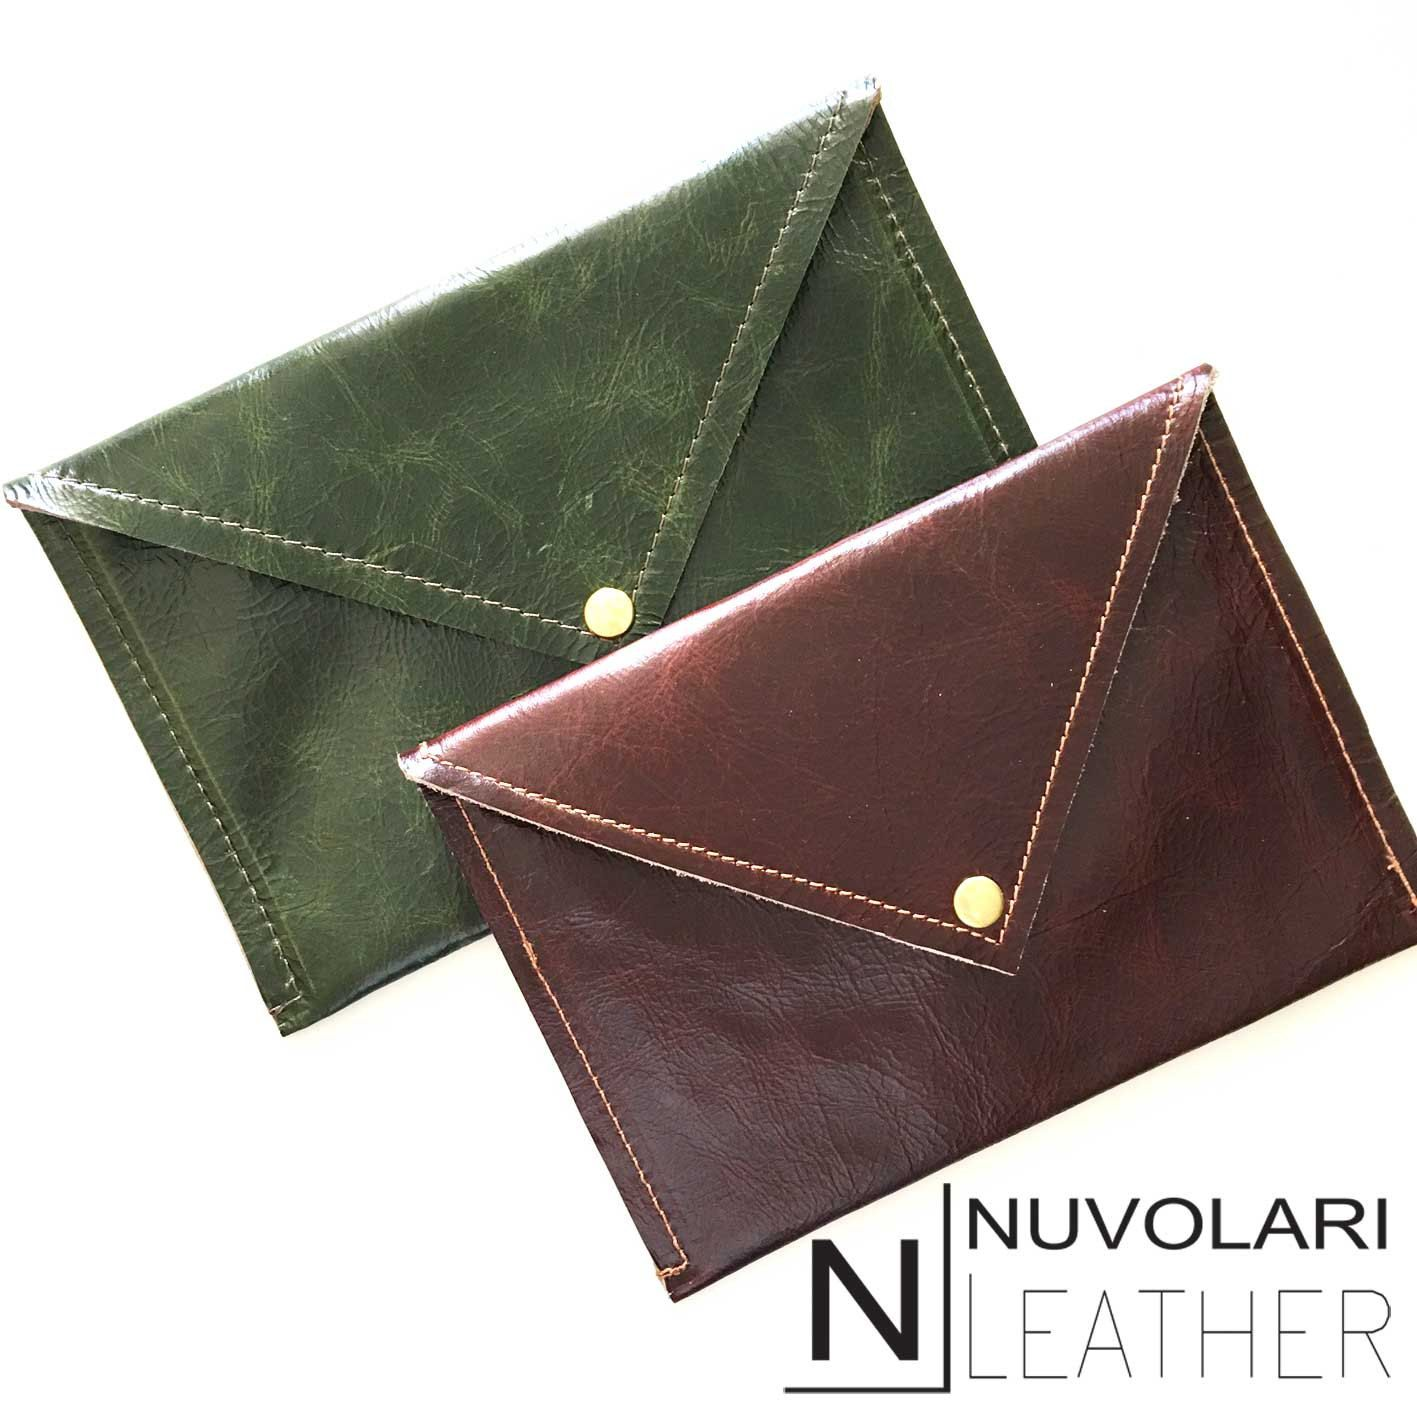 Leather Envelope, Envelope HandMade, Leather Case, Leather Case Envelope, Envelope Leather Clutch, Handbag, Gift, Purse, Envelope More Size di NuvolariLeather su Etsy